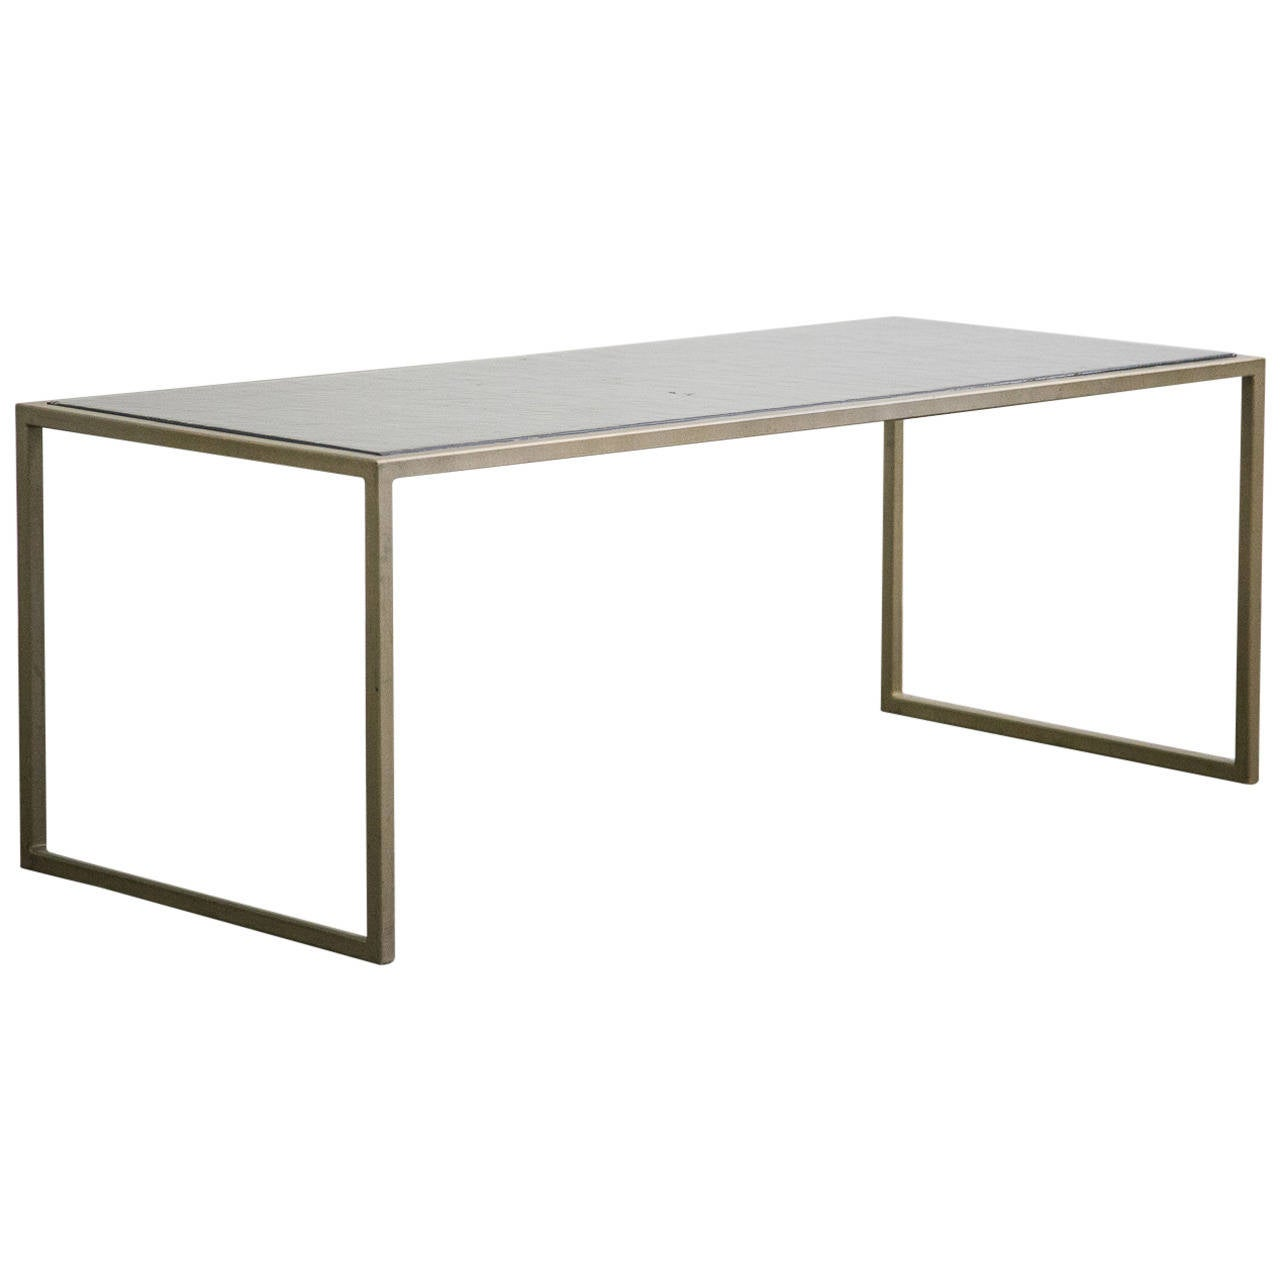 philippe starck designed coffee table paris circa 1985 for sale at 1stdibs ForPhilippe Starck Tables